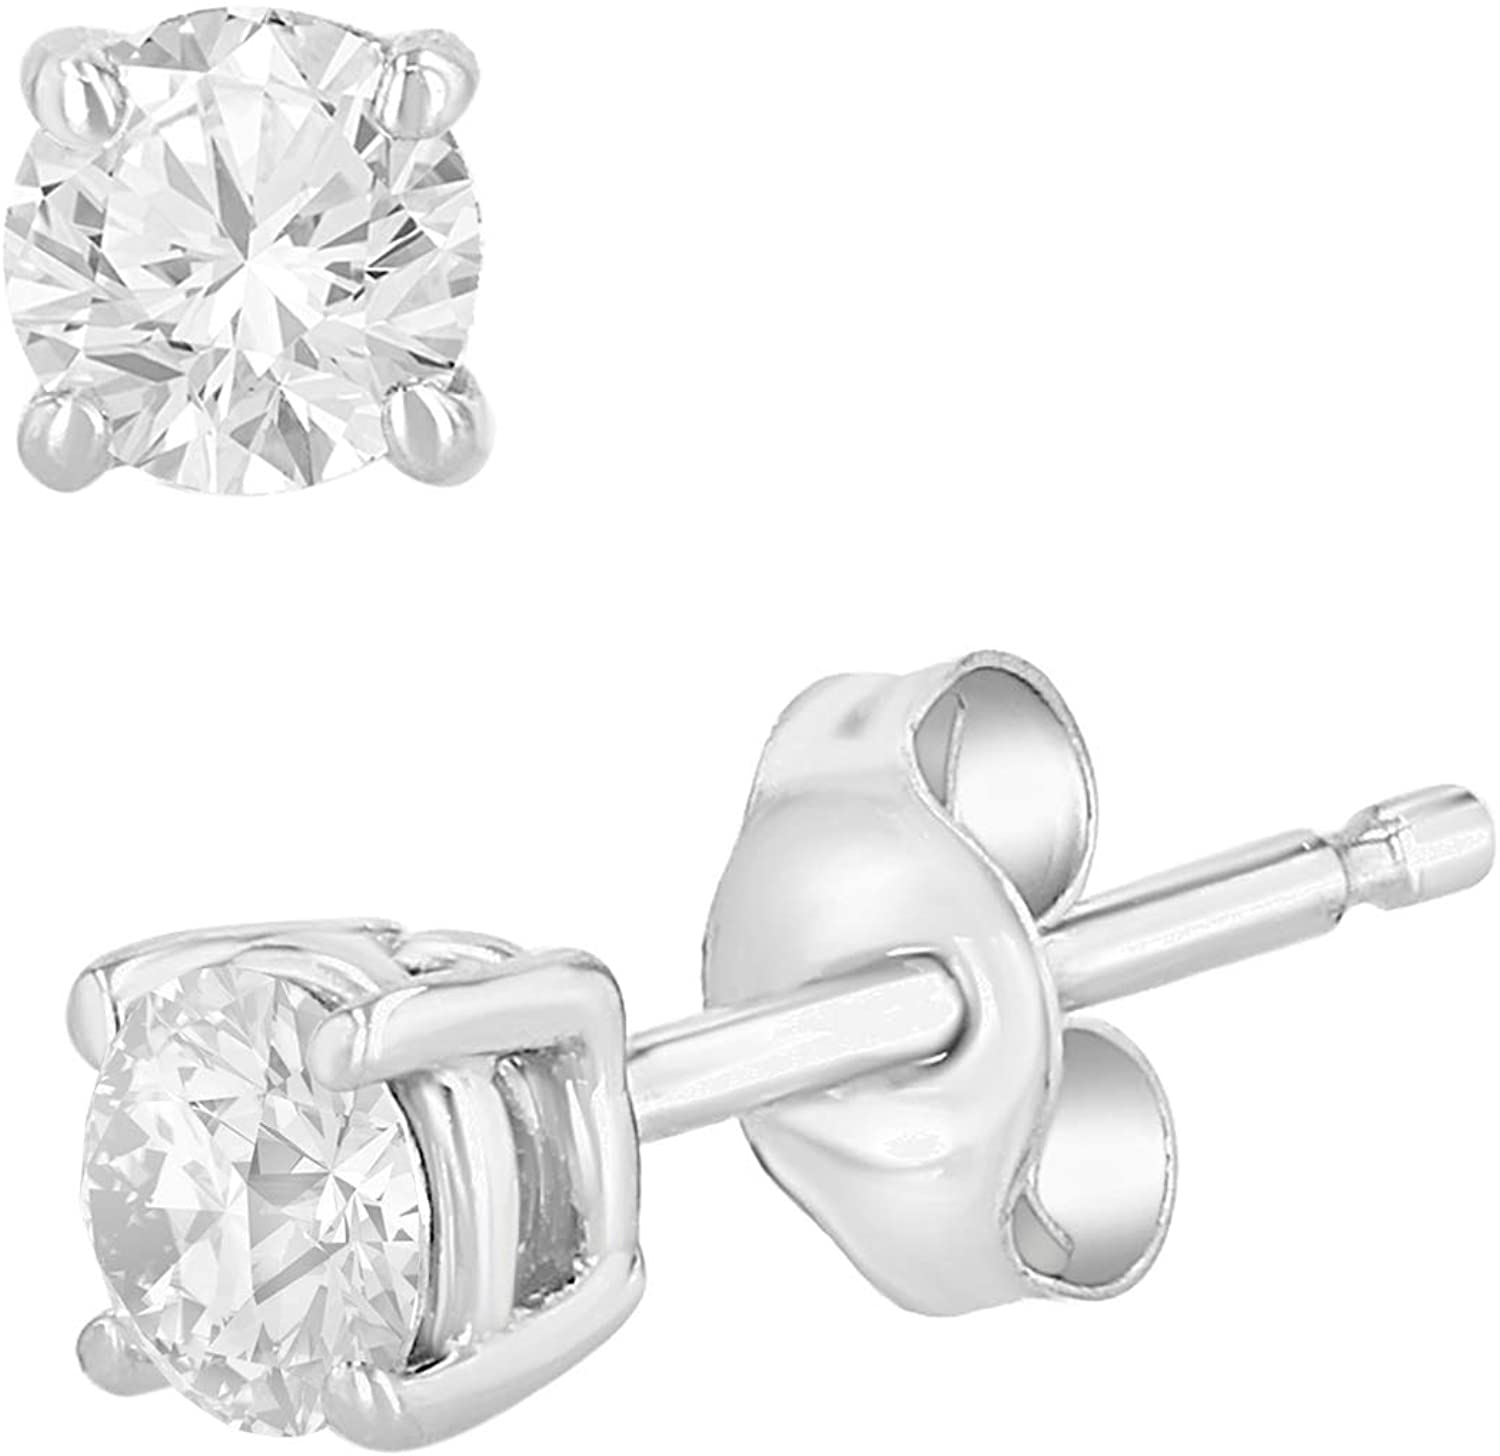 0.10-1 Carat Total Weight Round VS Diamond Stud Earrings for Women in 14K White, Yellow, or Rose Gold (0.30cttw and up IGL Certified)